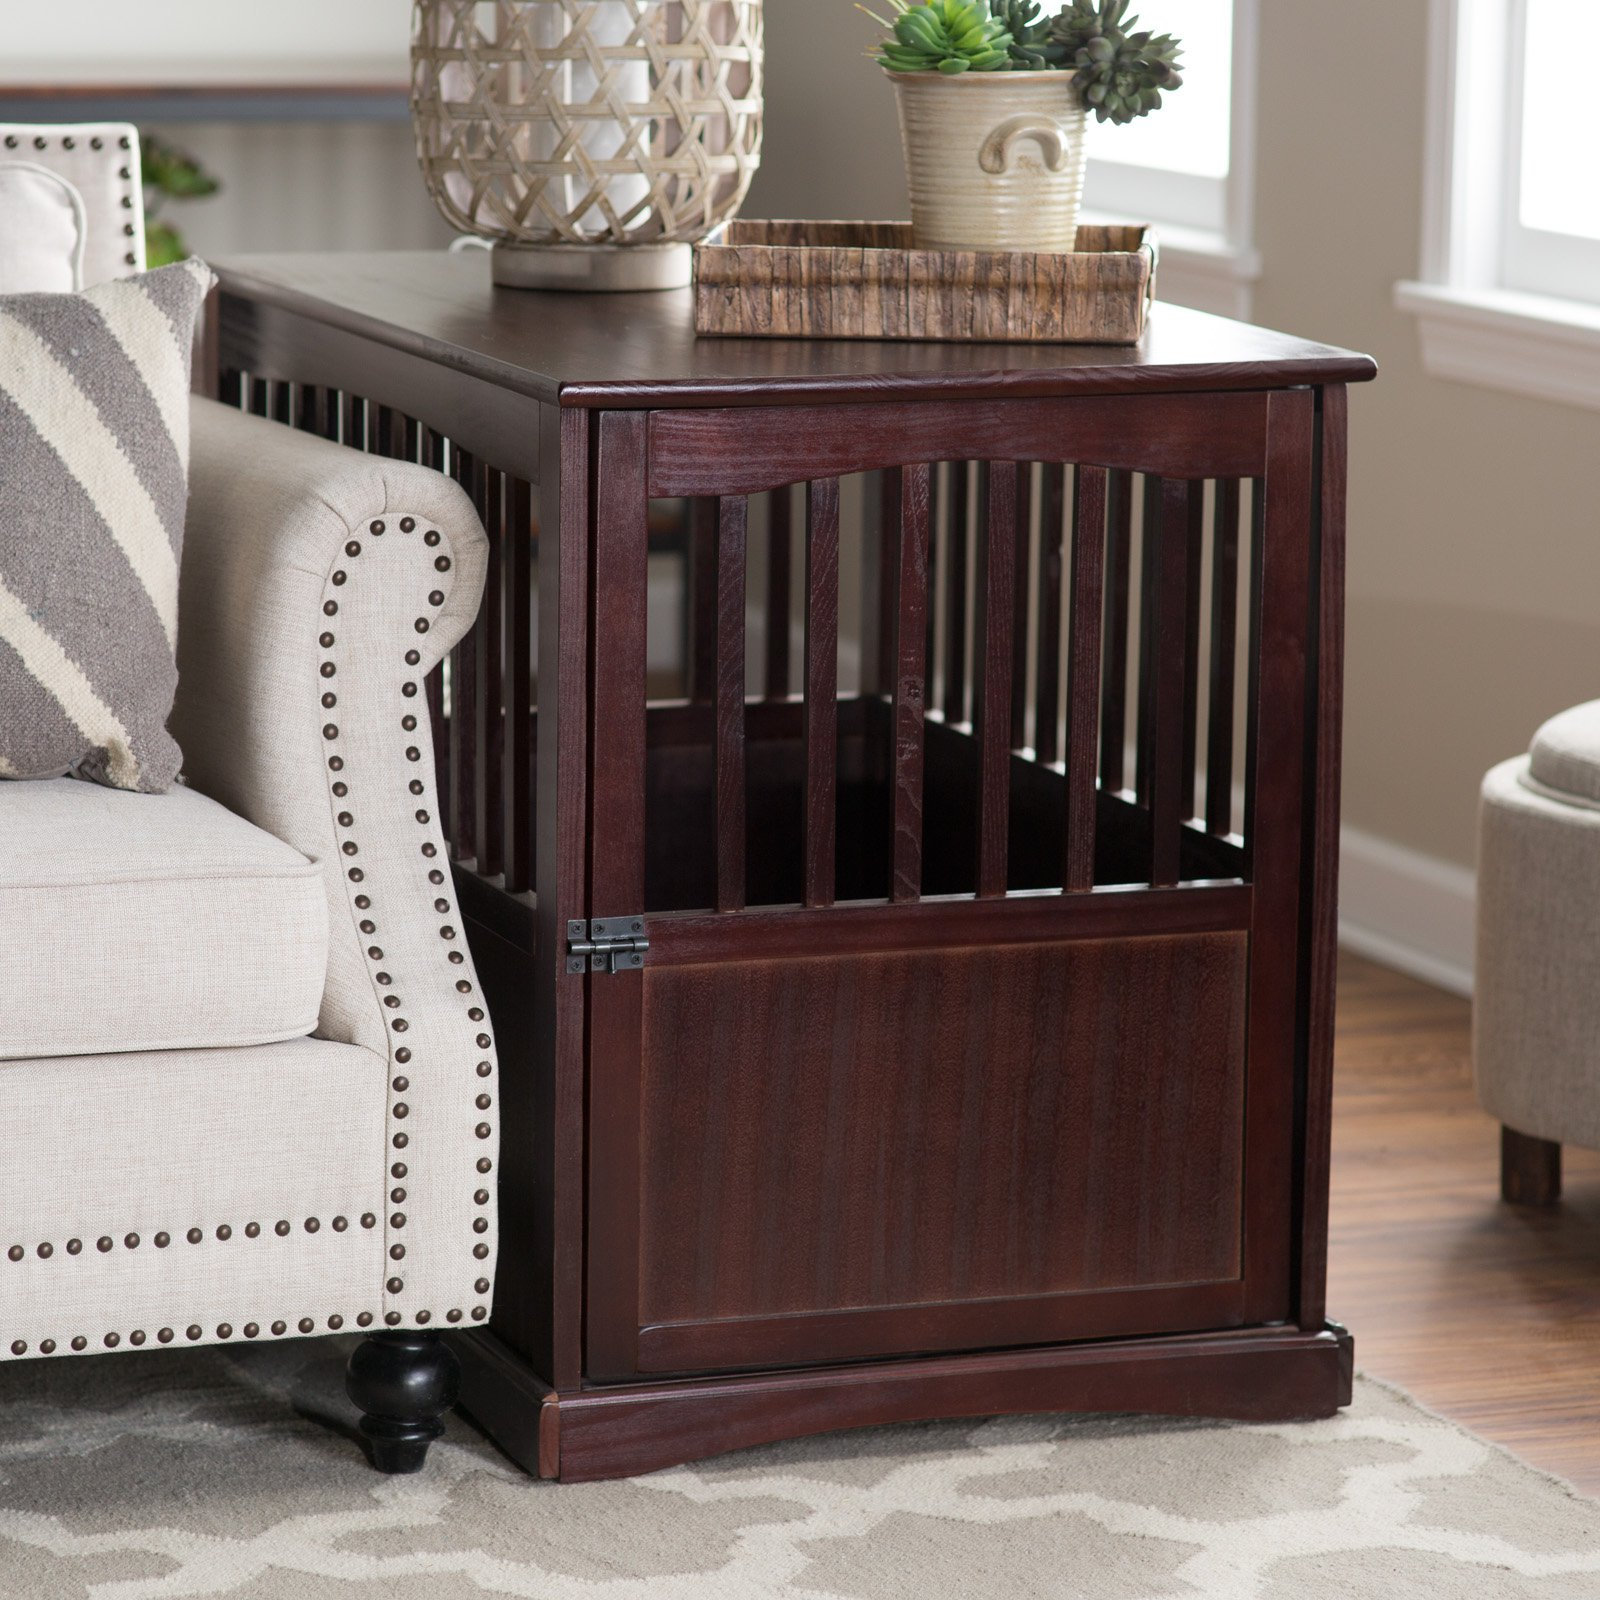 newport pet crate end table master paint and distress wood kmart home furniture inch height nightstand glass nic round decorating ideas floral lamp homesense cabinets oak chairs